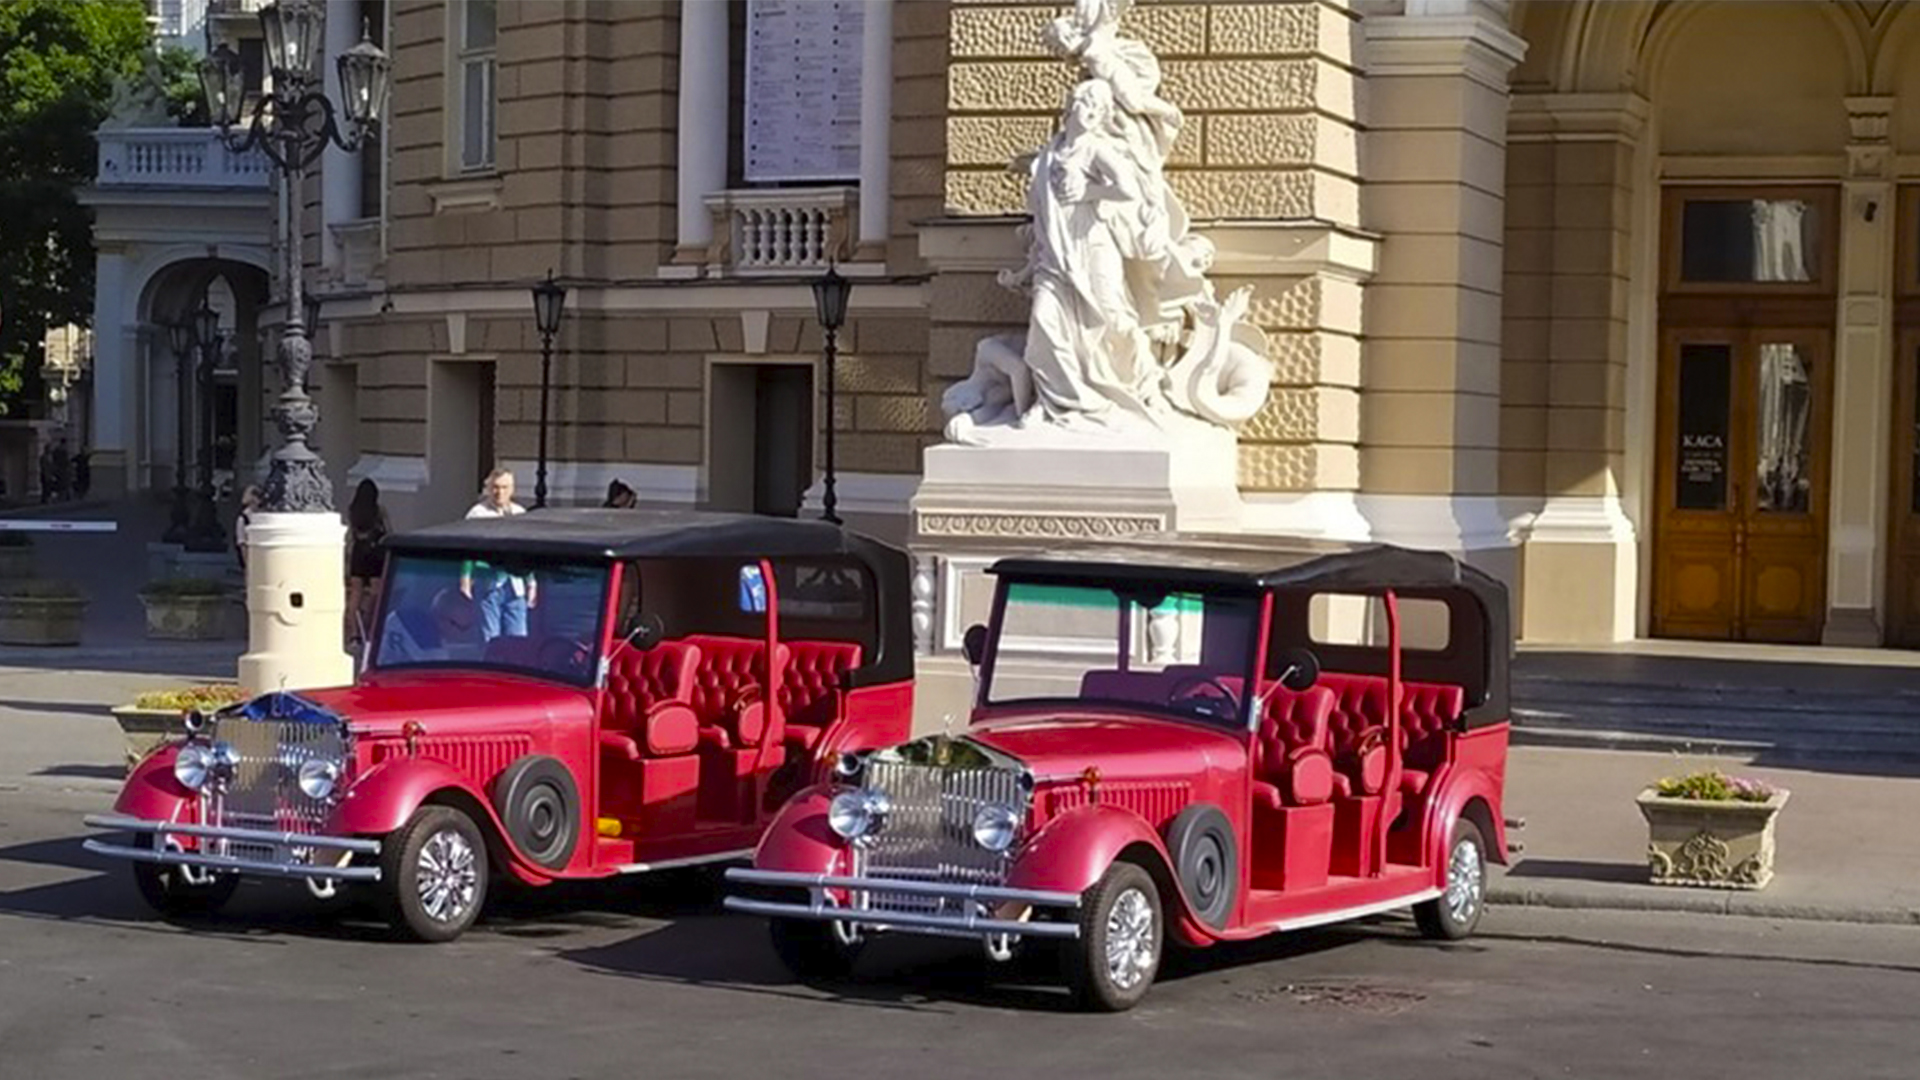 Sightseeing tour of Odessa and the Opera House